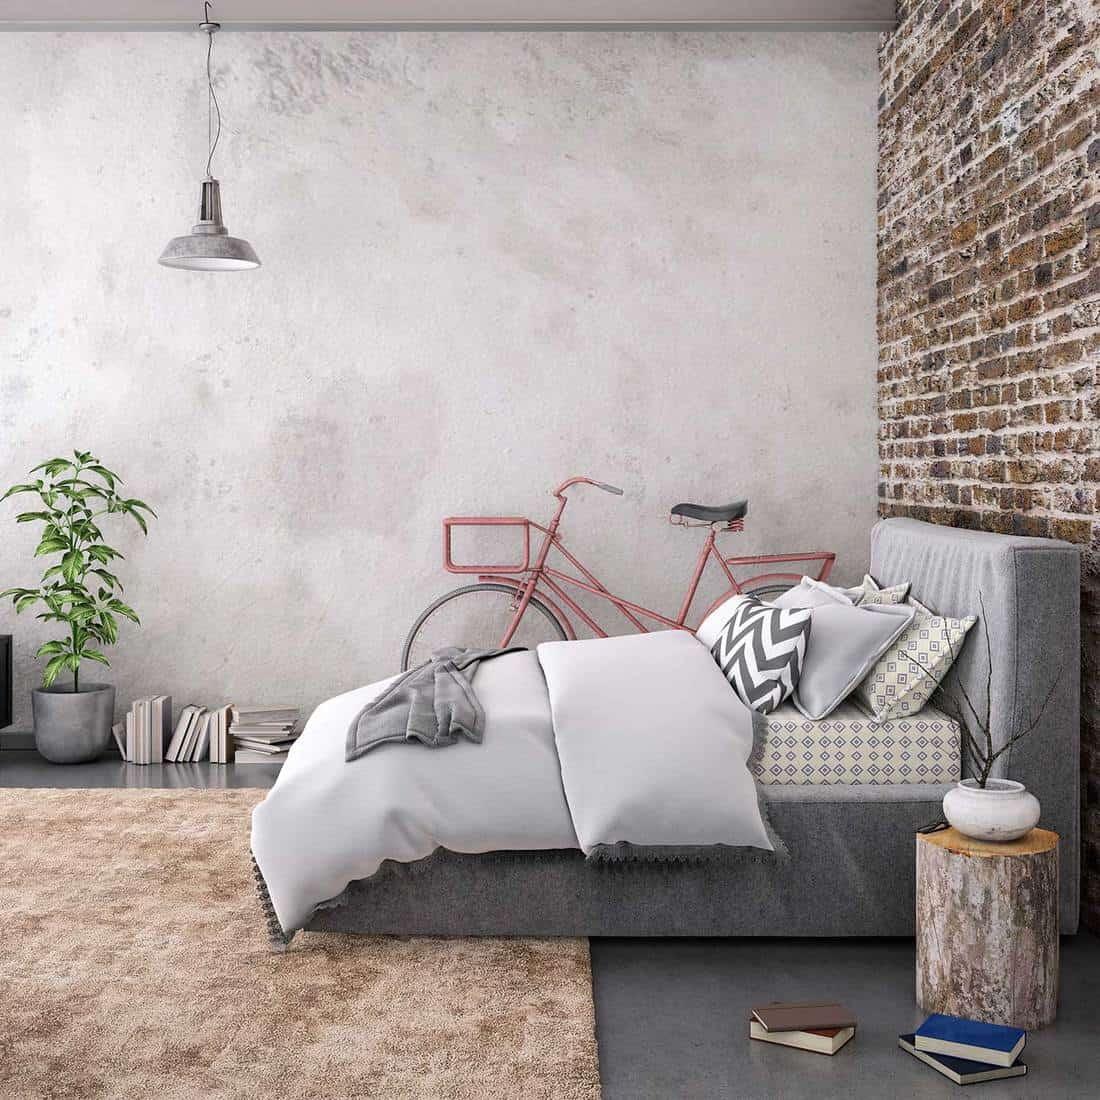 Stylish bedroom with brick wall, grey bed, bicycle, log and carpet